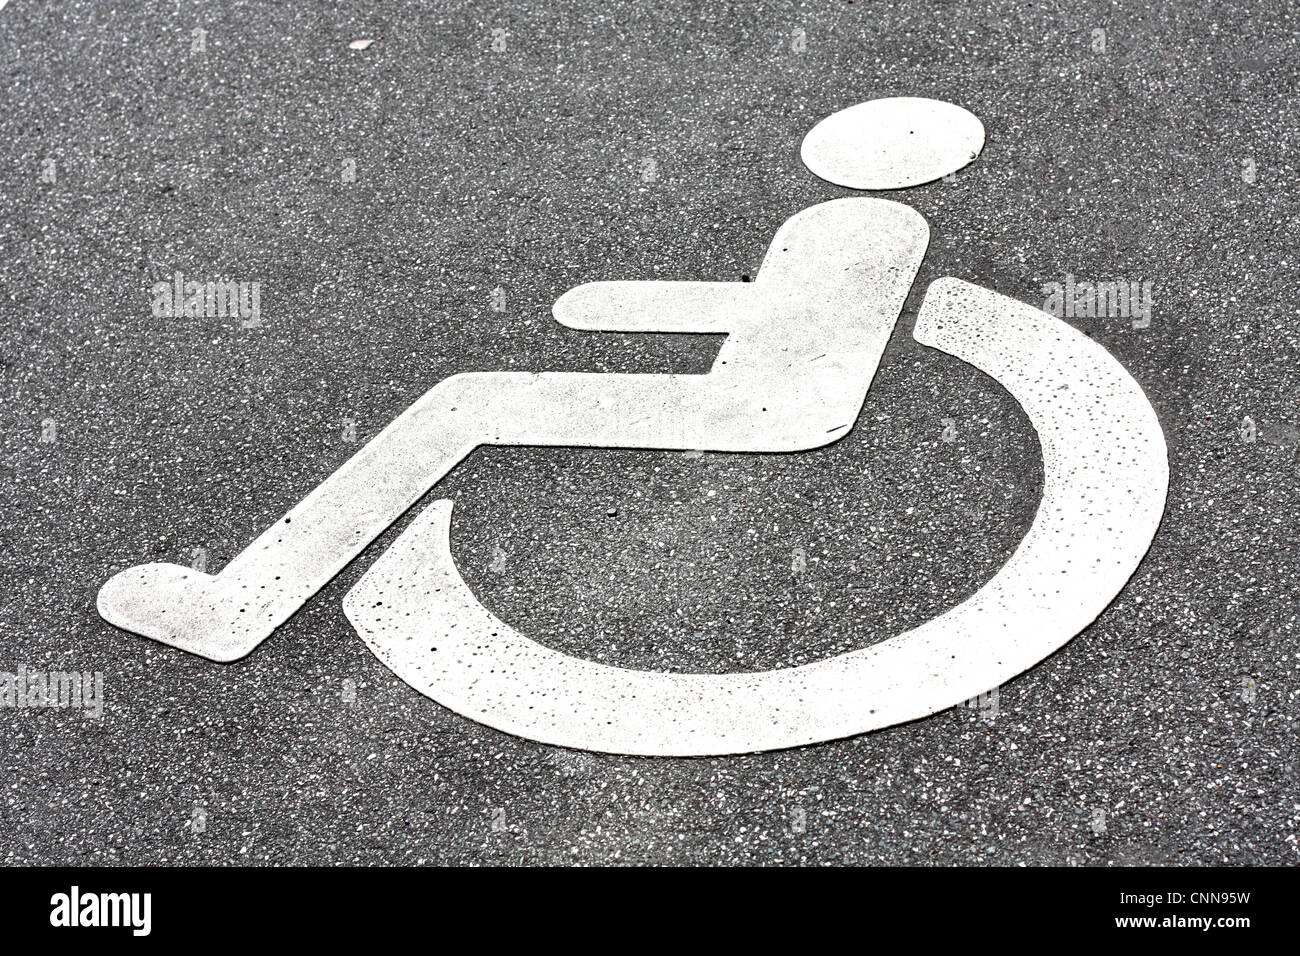 A disability logo in the road - Stock Image